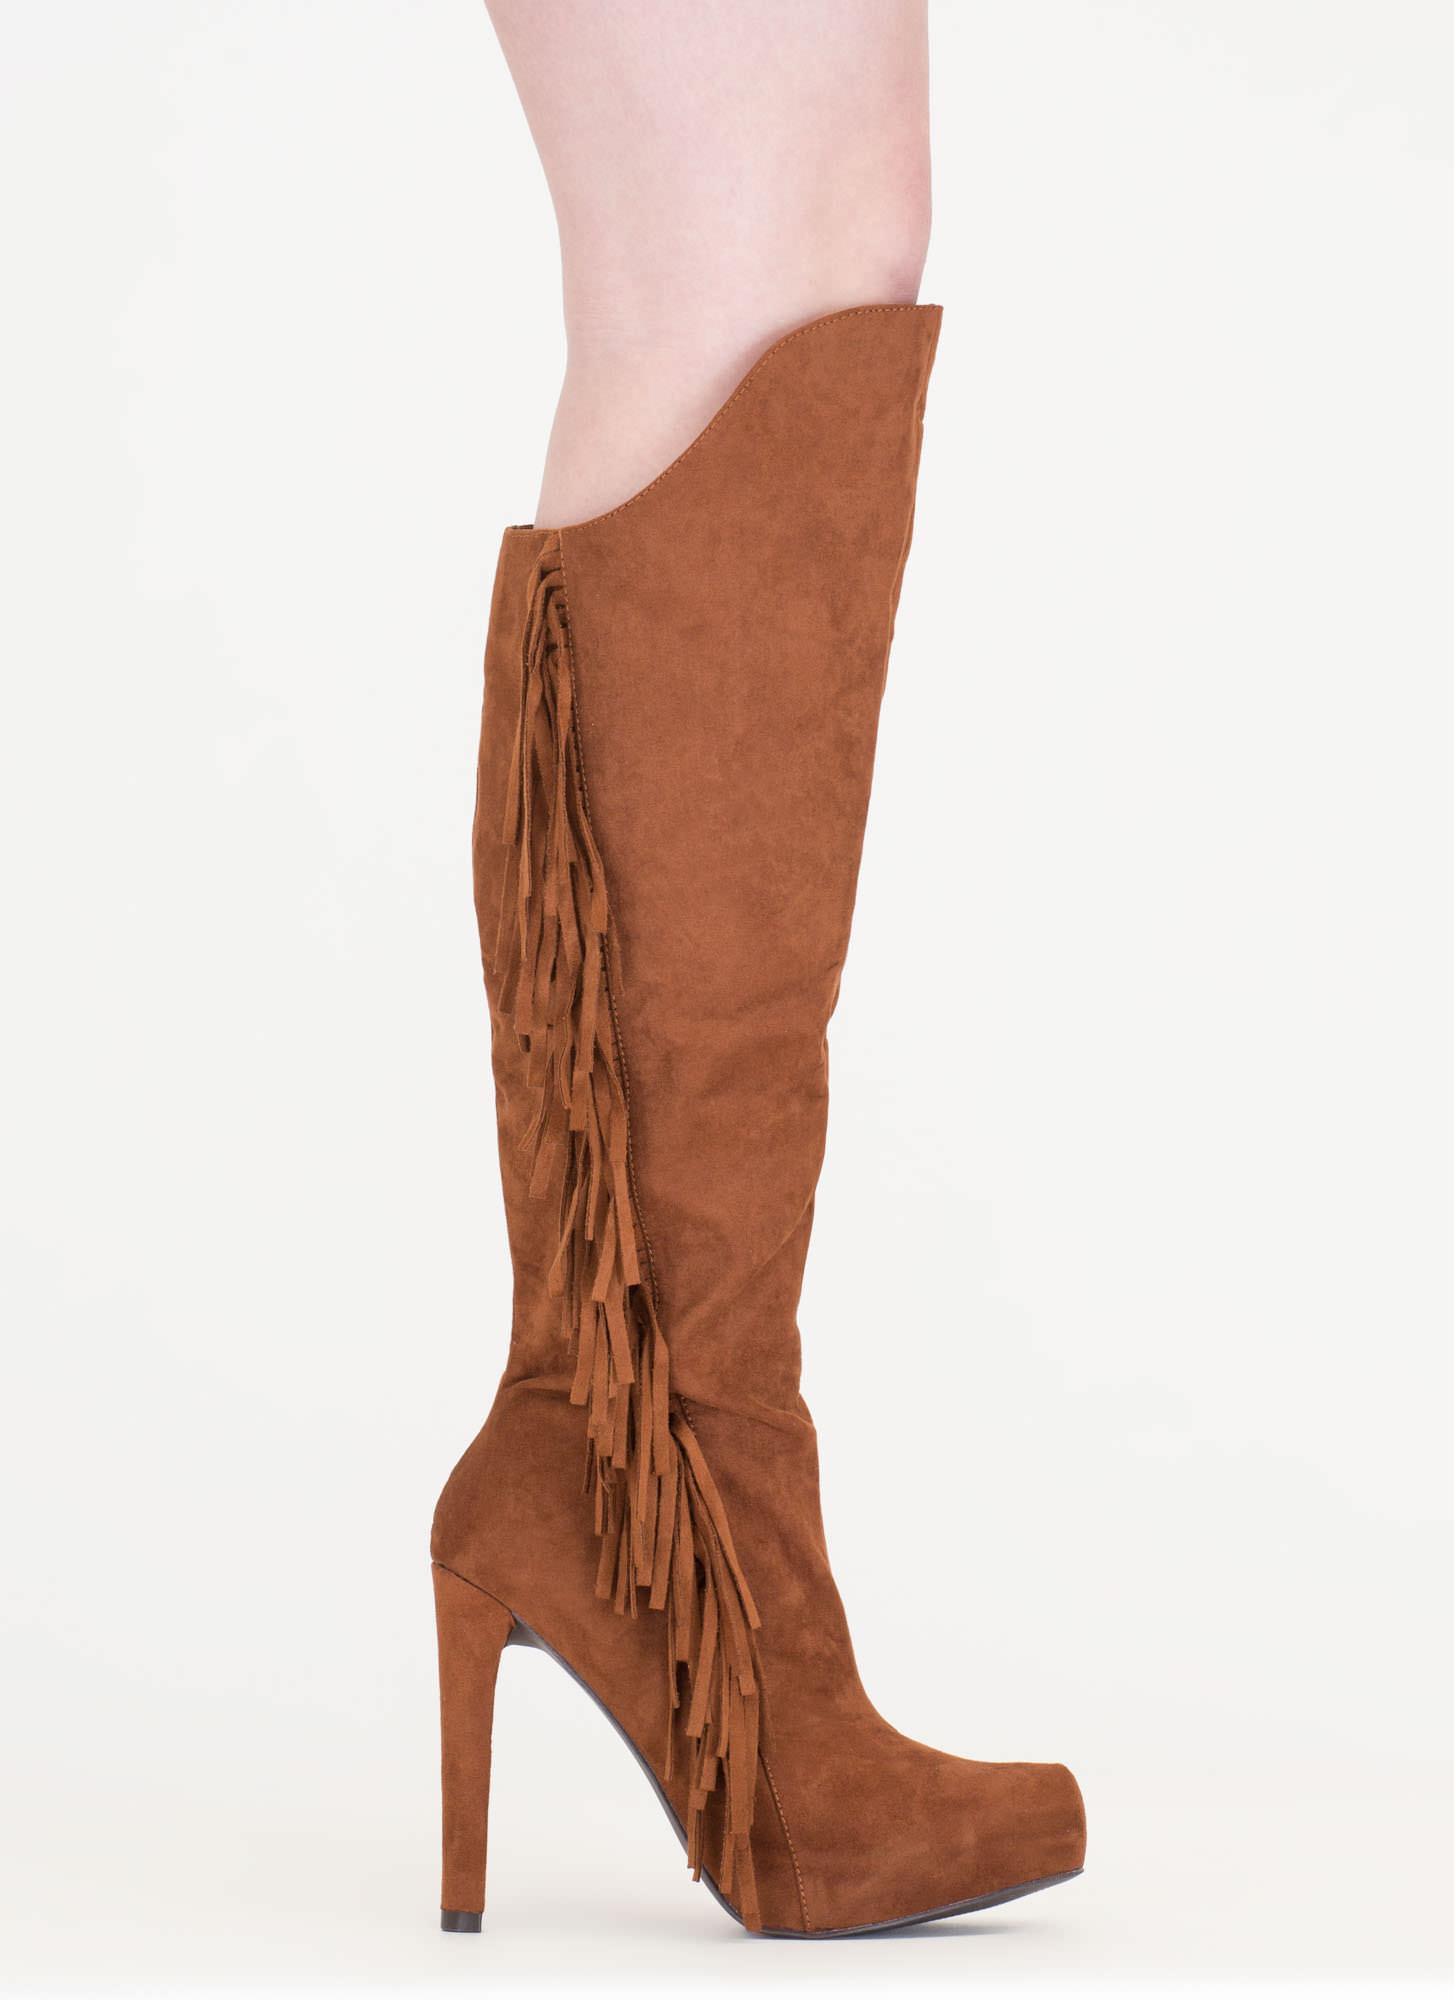 Long Live Fringe Over-The-Knee Boots DKRUST